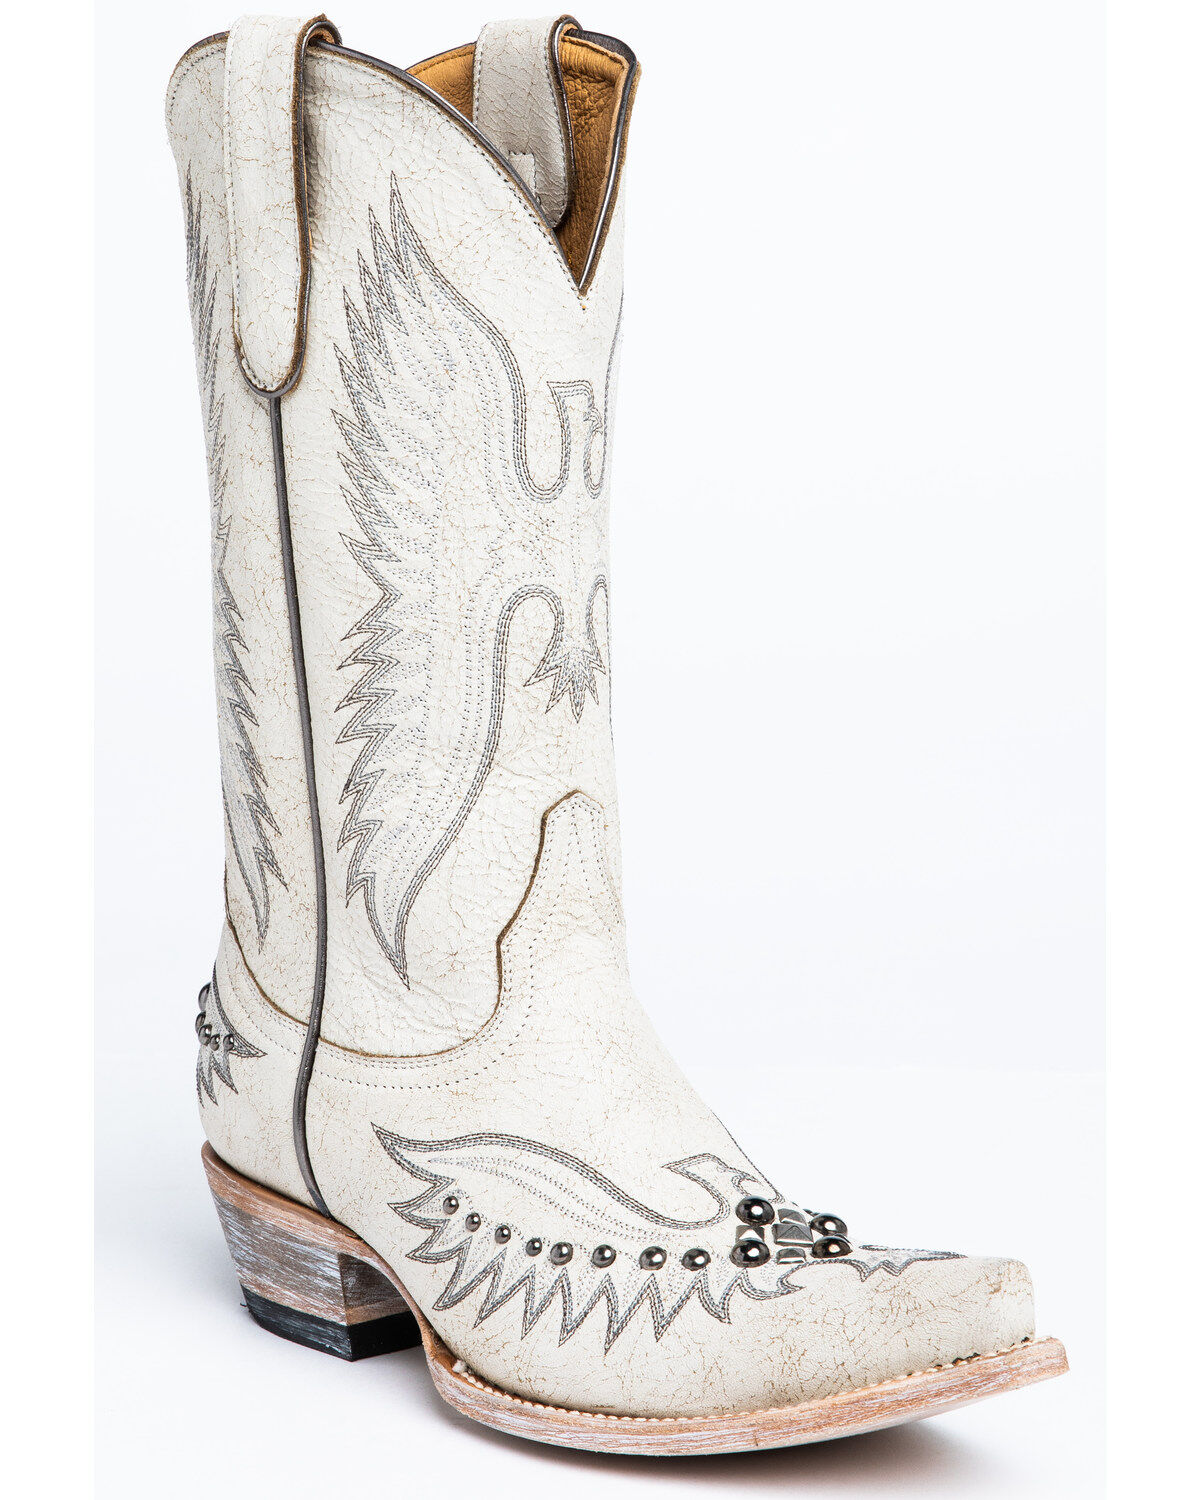 All Women's Boots \u0026 Shoes - Boot Barn